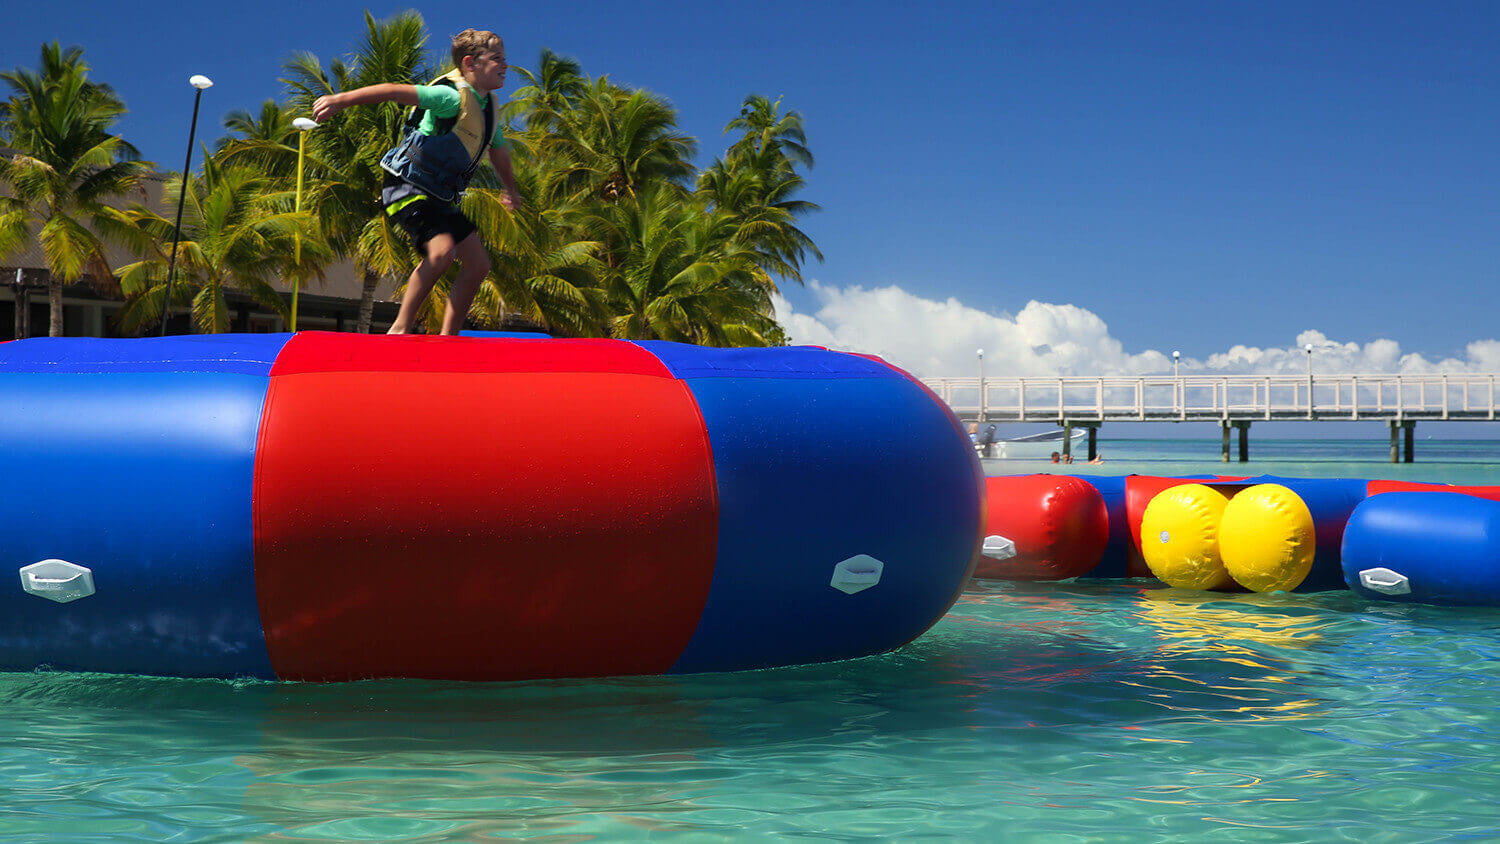 Inflatable Action Tramp Bouncer (Aqua Adventure) - Open Water Aqua Adventure Inflatable Waterpark - Aflex Technology